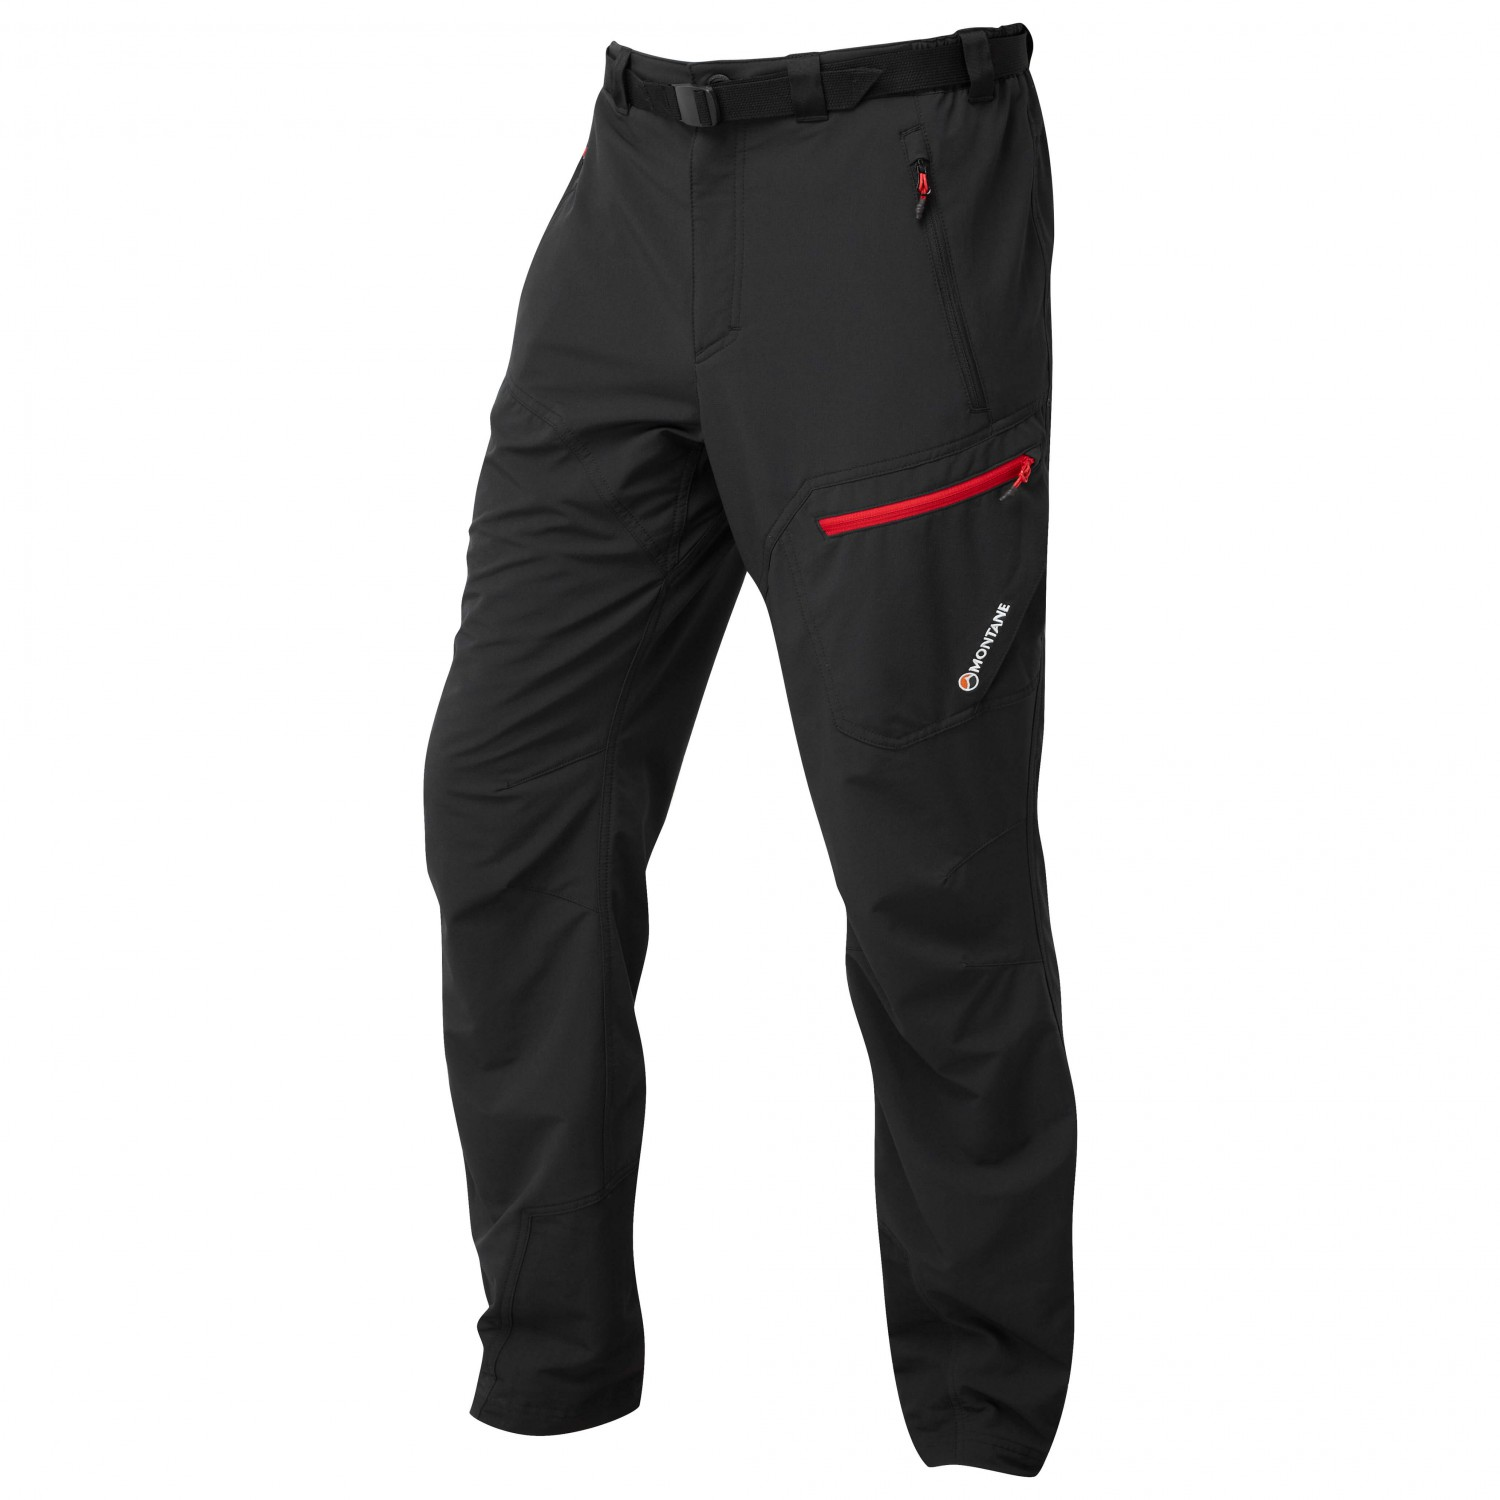 Pants specifically designed for hiking are the best choice for trekking or backpacking in just about any environment. The challenge comes when trying to decide which ones to buy. While comfort is usually a top priority, the climate in which you spend most of your time can dictate what features are most important to you.